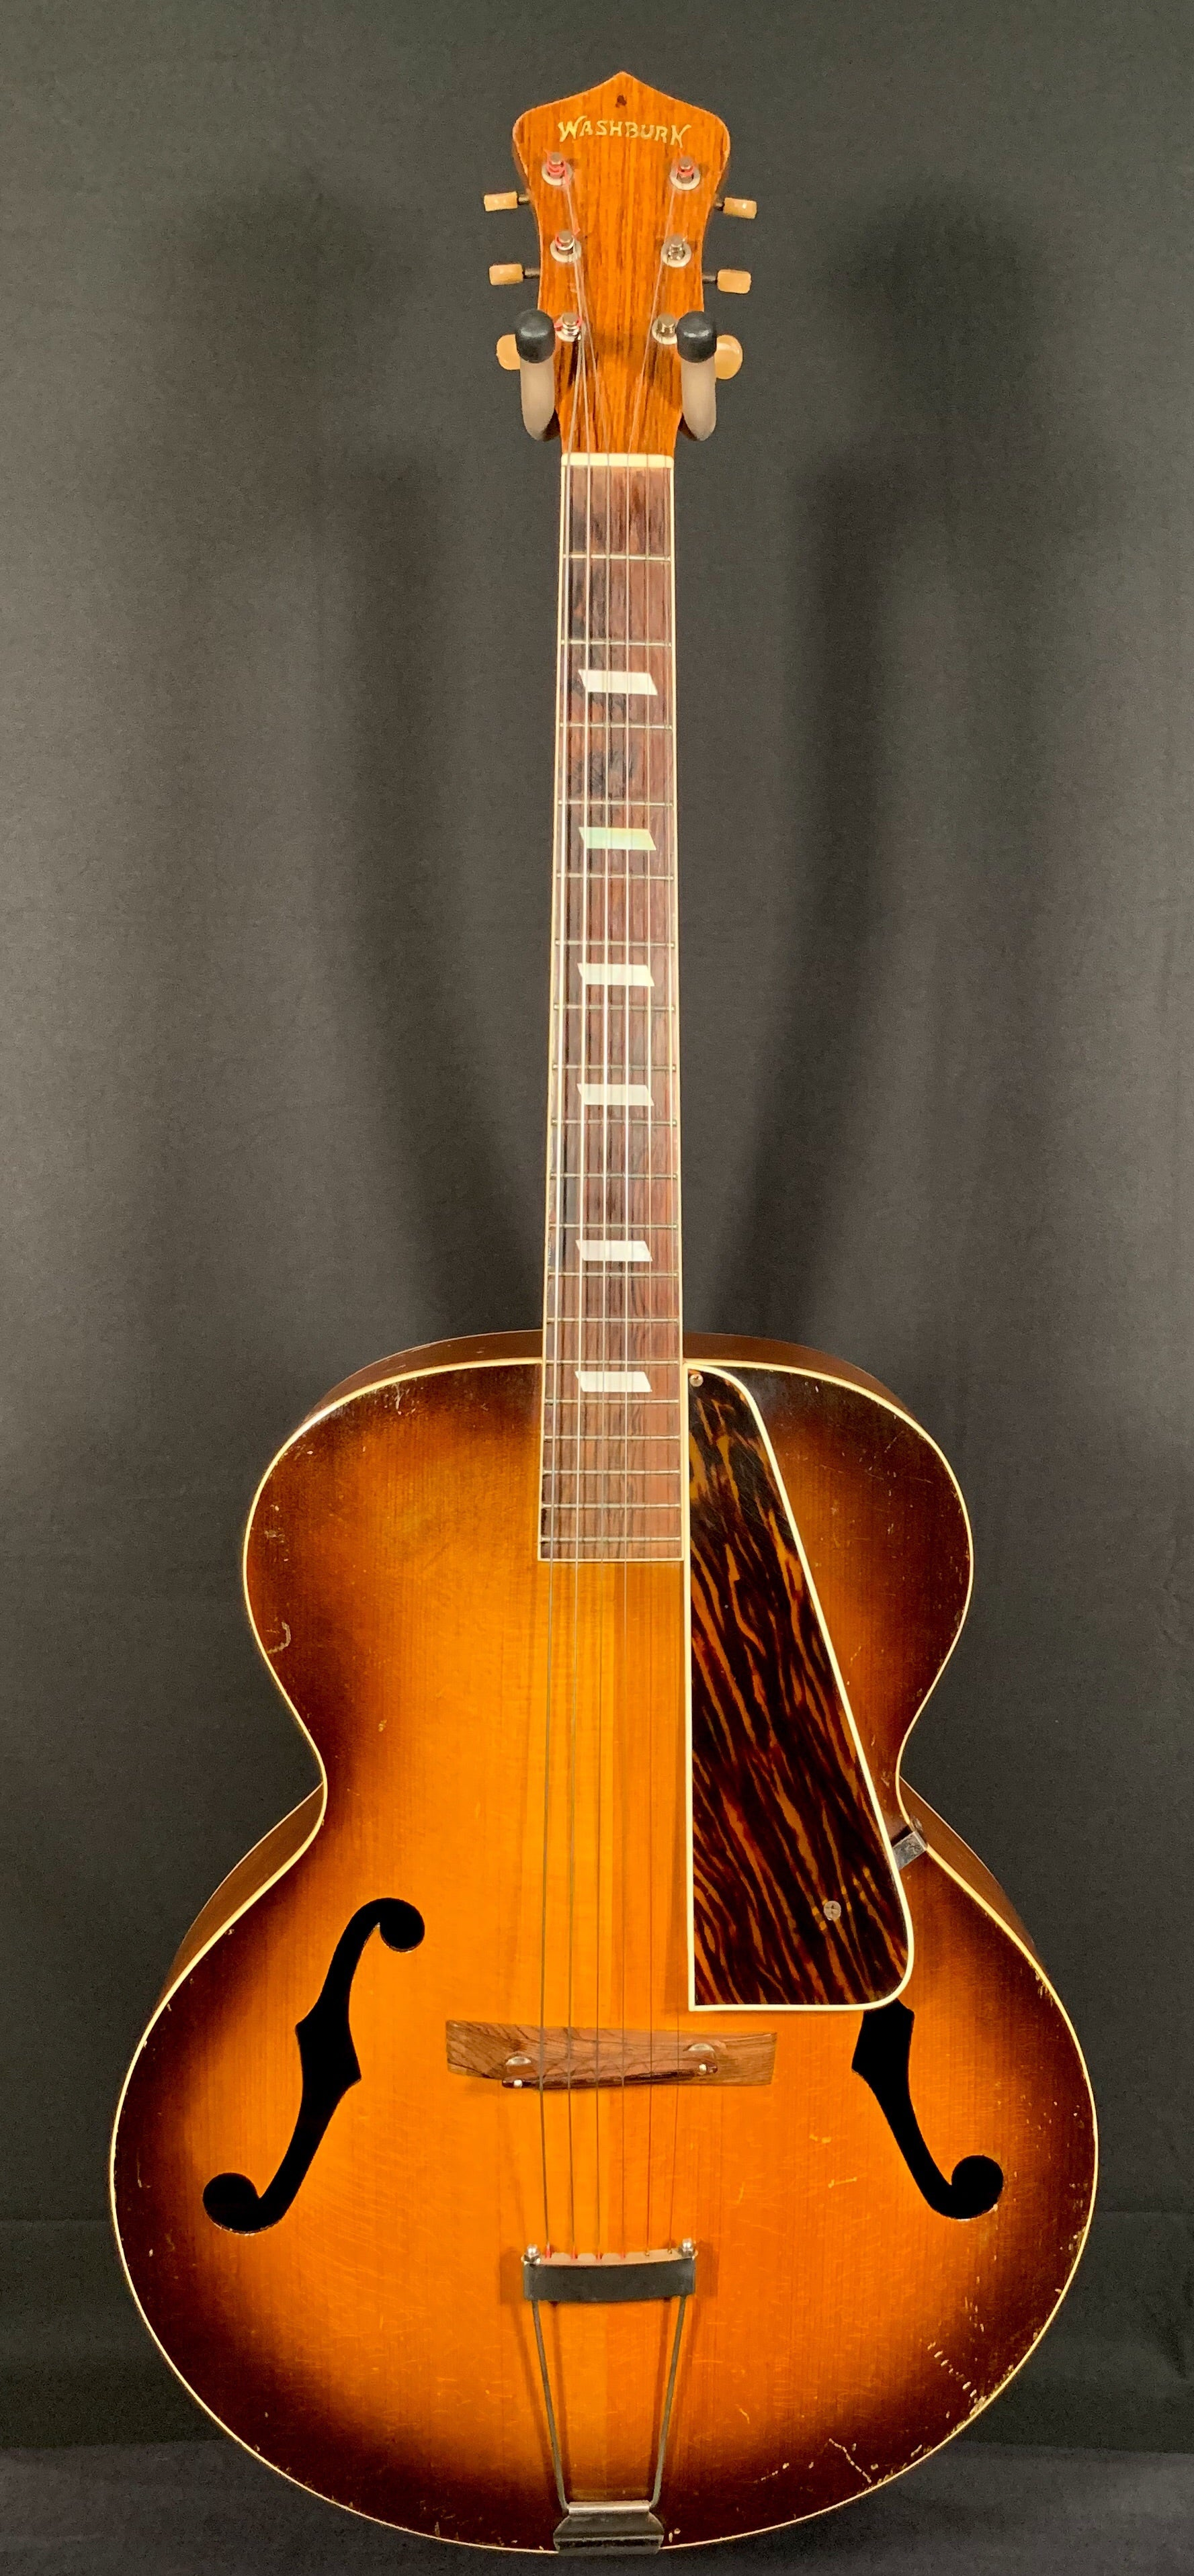 "**** SOLD **** Washburn Made by Gibson model 5243 ""Aristocrat"""